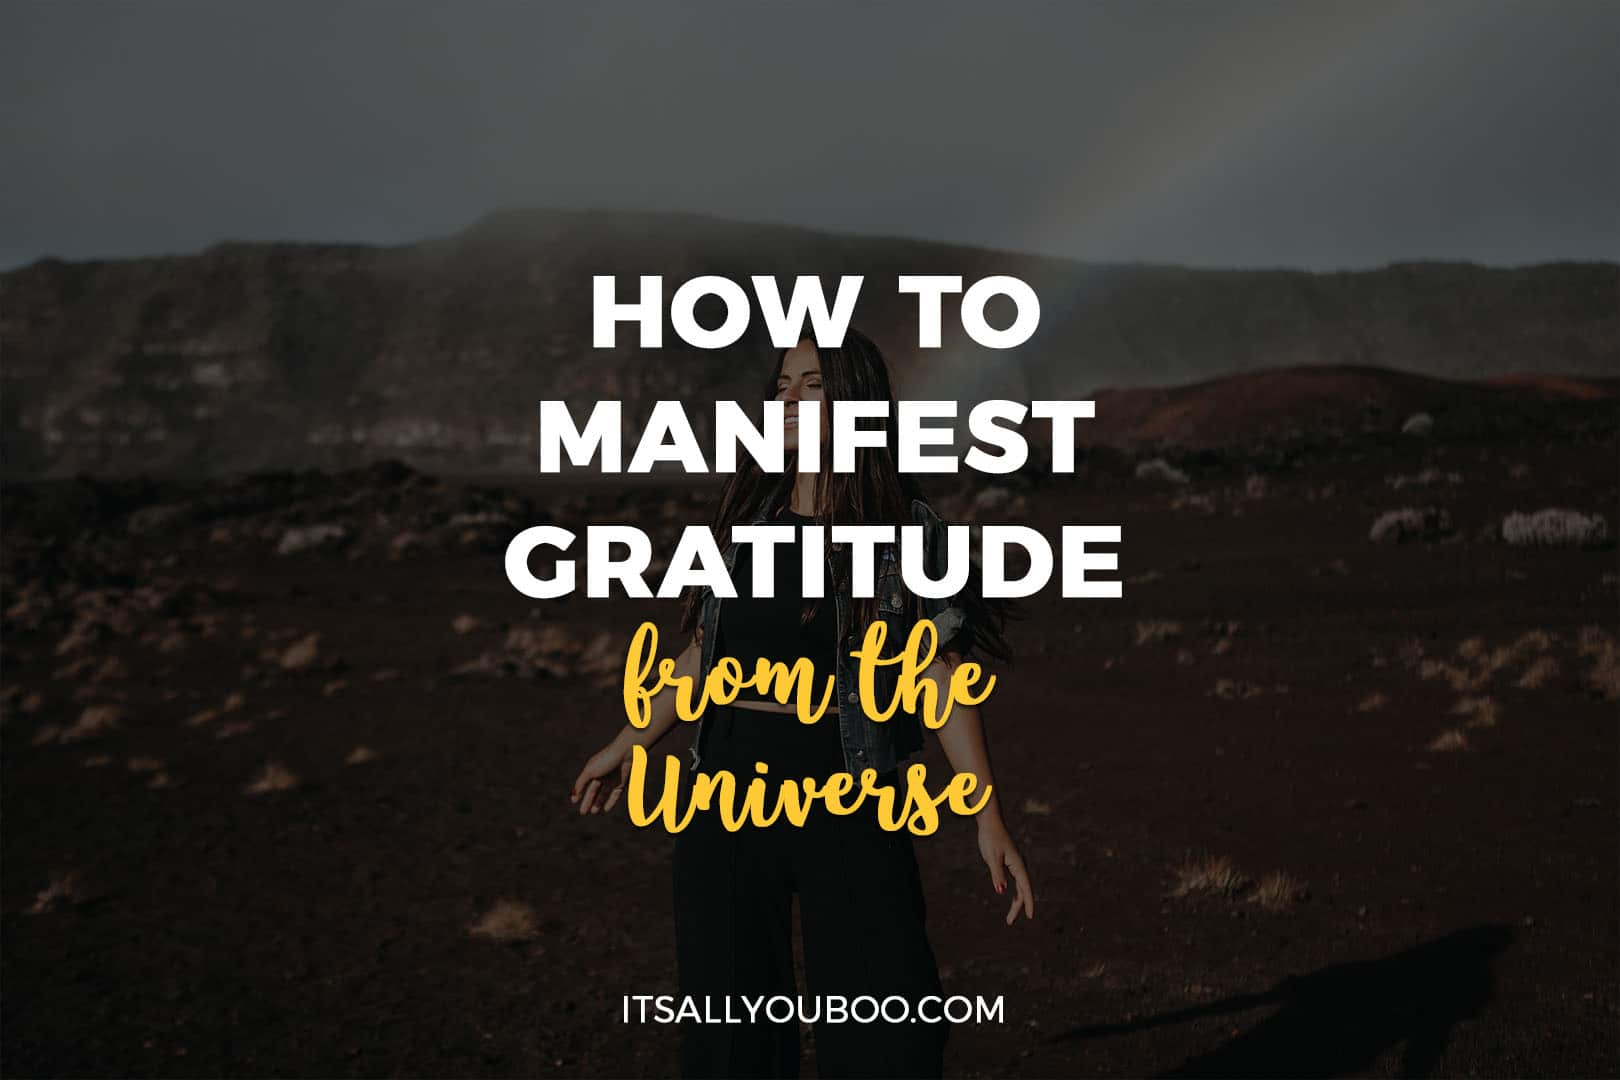 How to Manifest Gratitude from the Universe